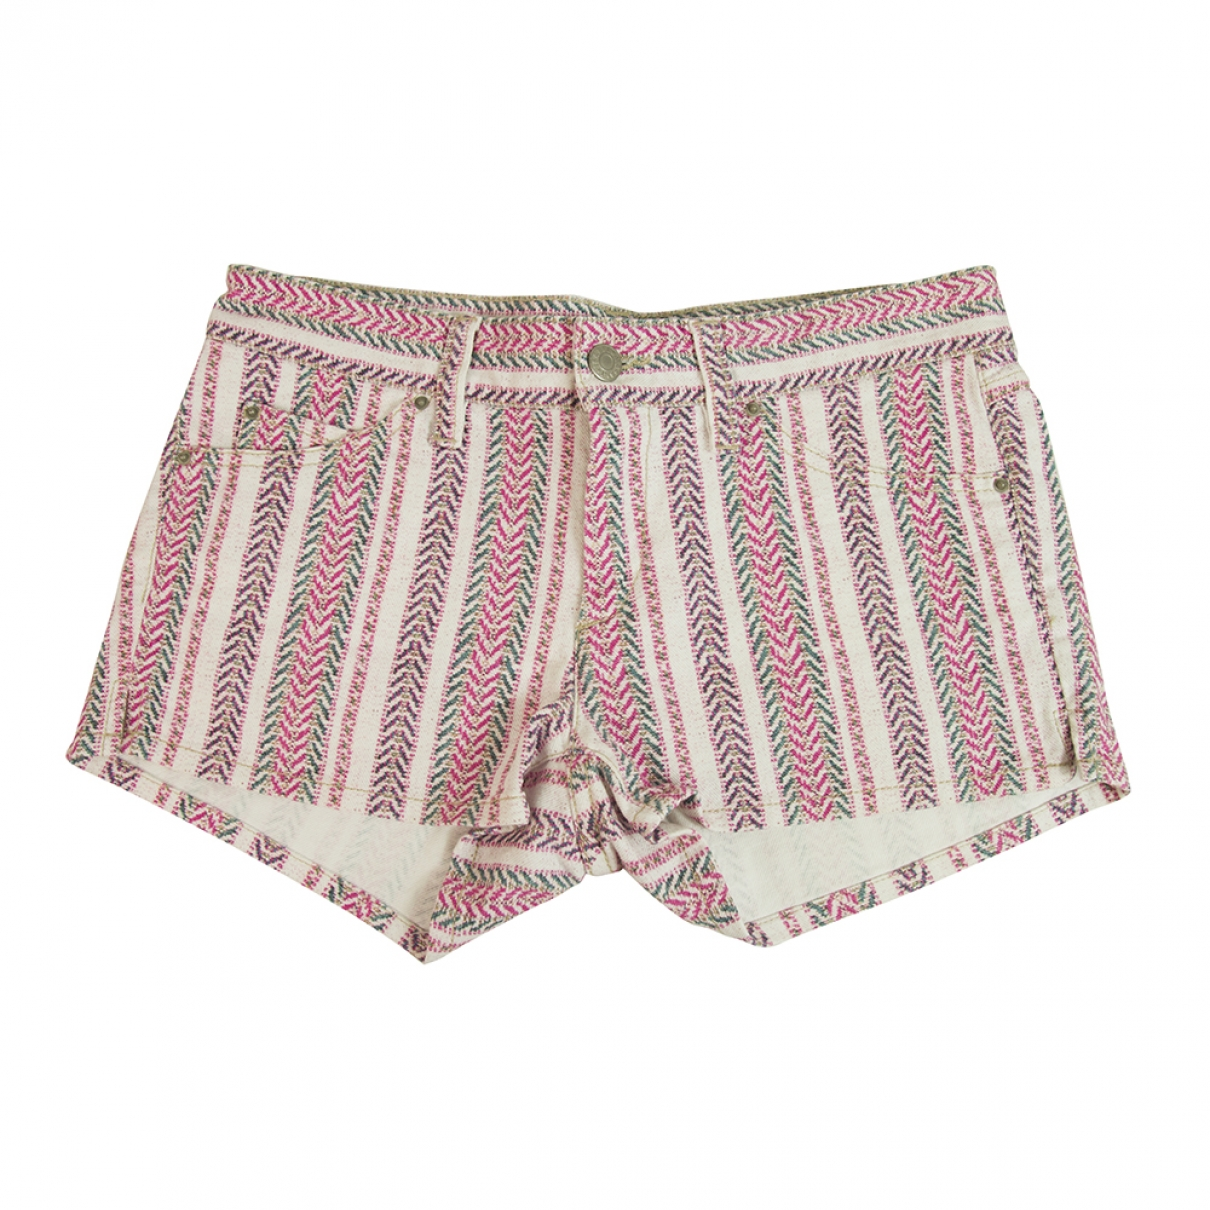 Isabel Marant Etoile \N Multicolour Cotton - elasthane Shorts for Women 38 FR